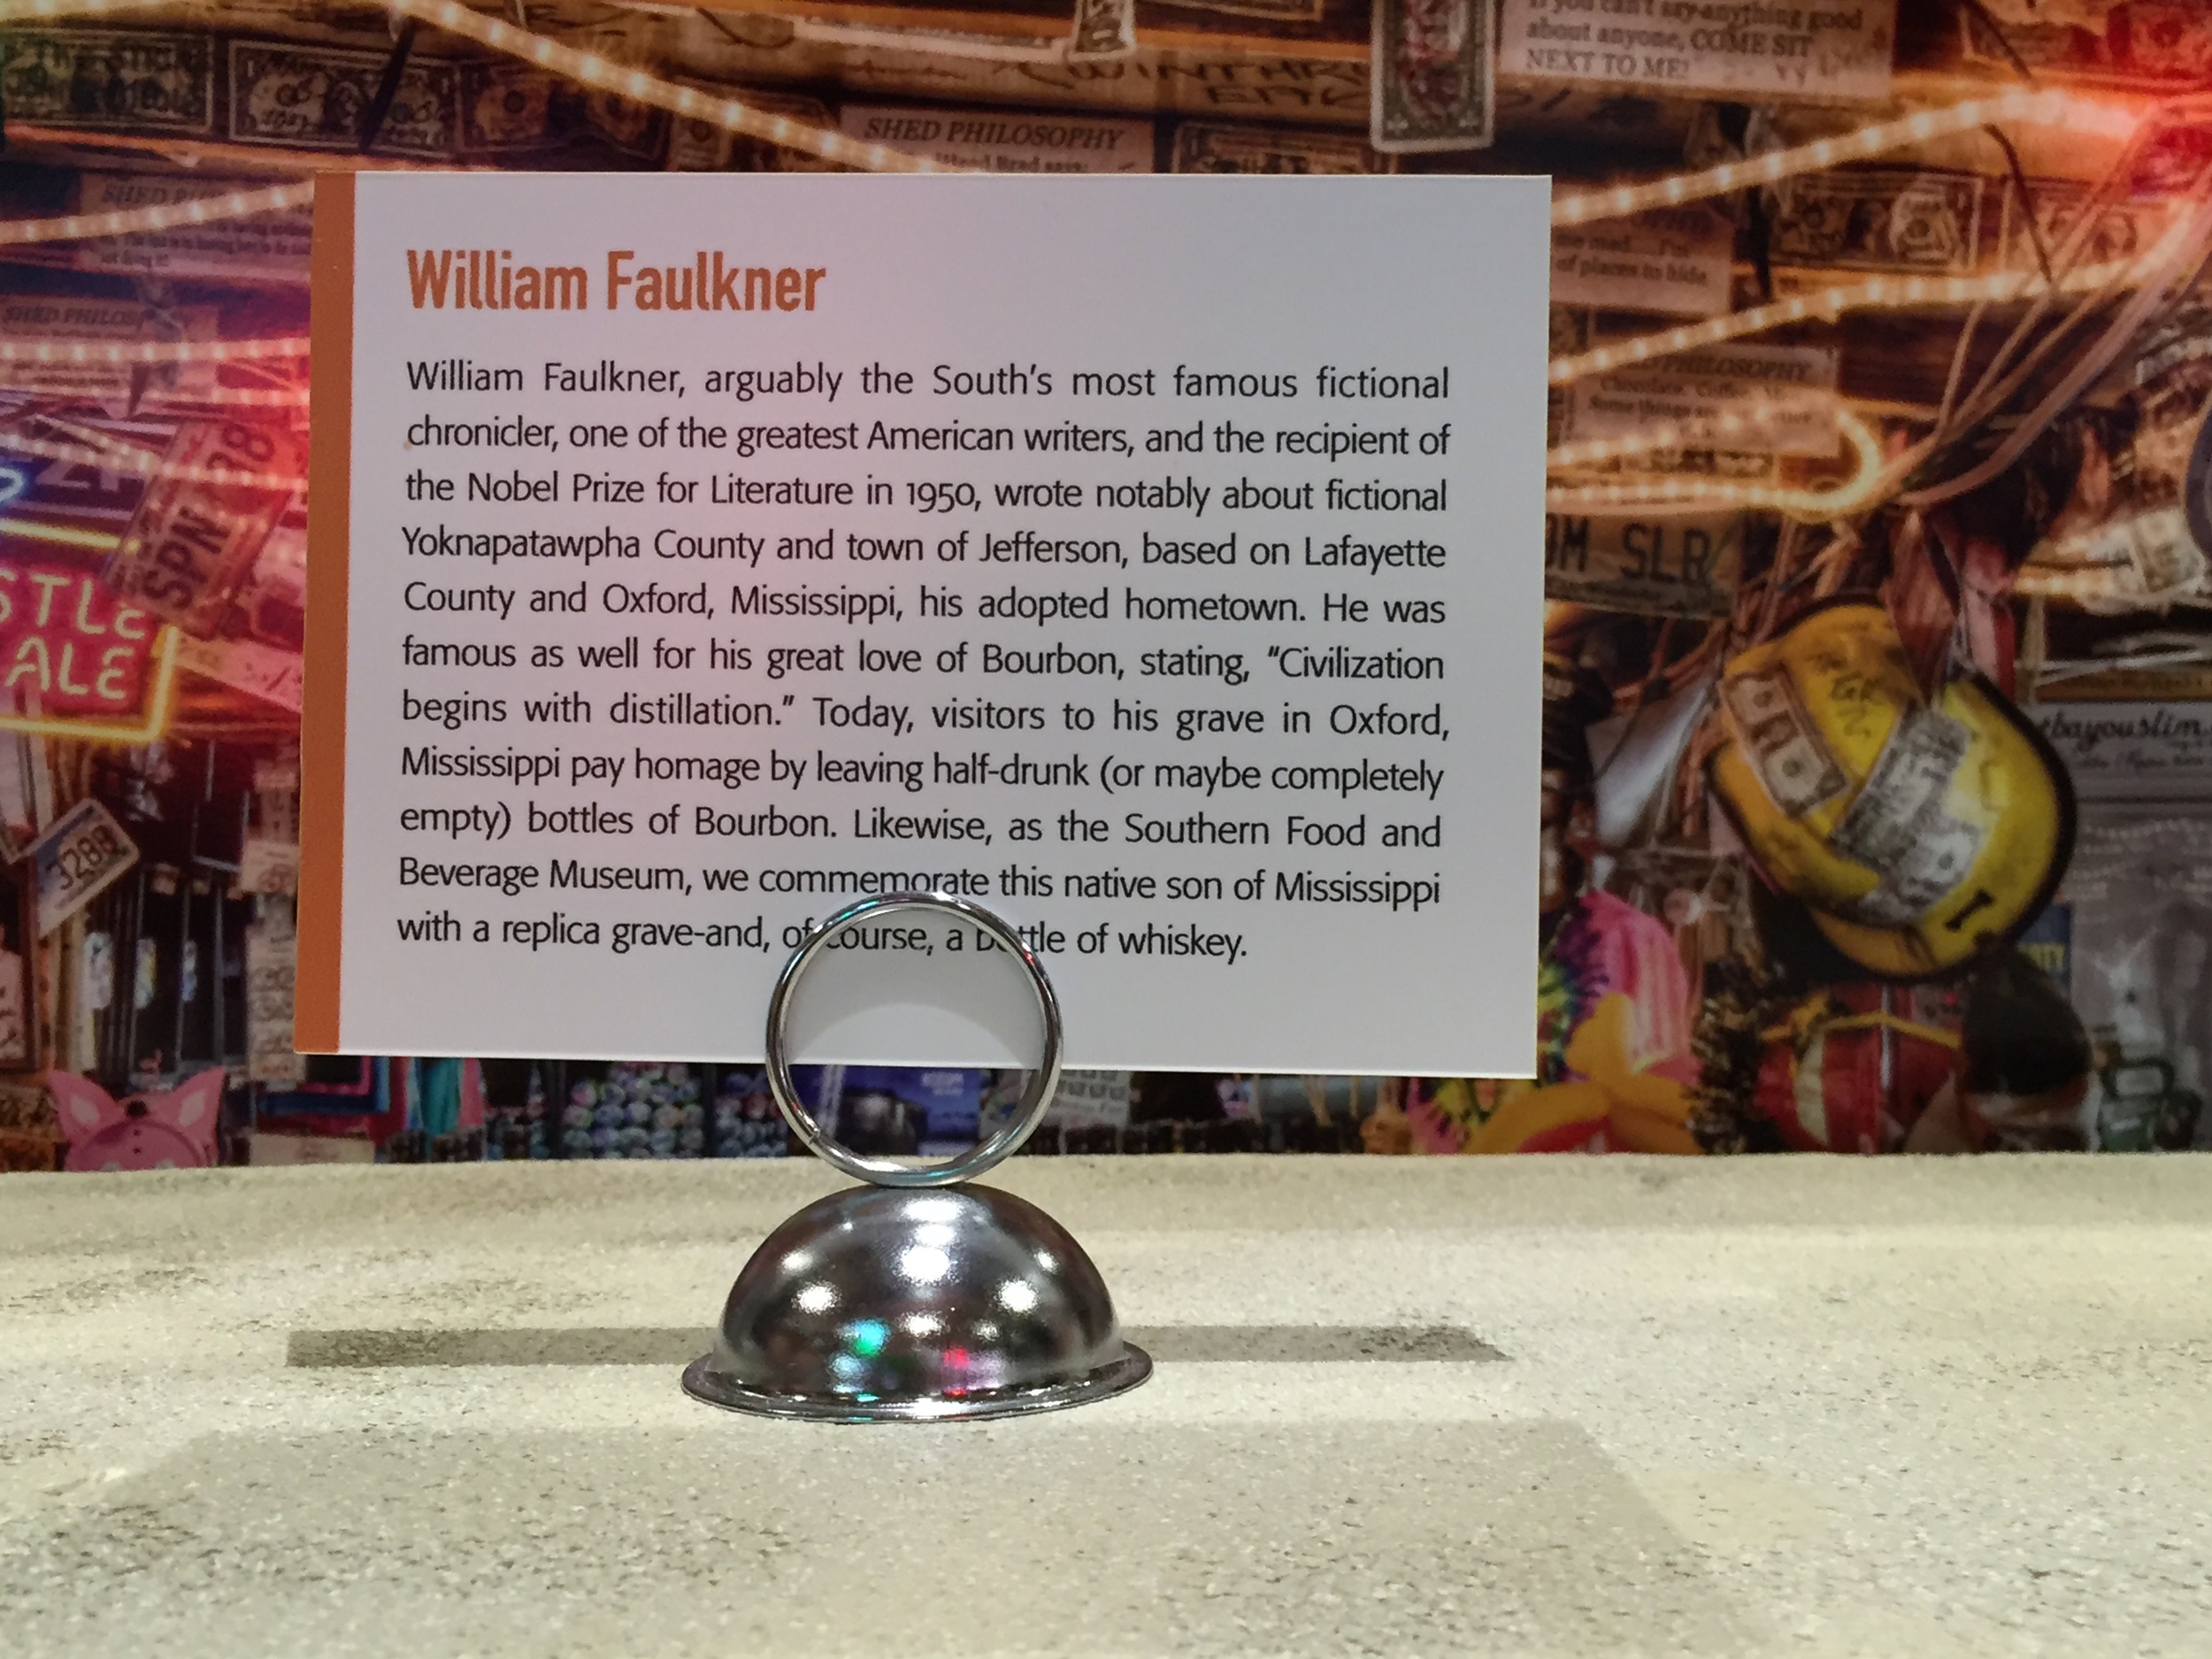 Faulkner Honored At Southern Food and Beverage Museum For Innovative Consumption Habits.